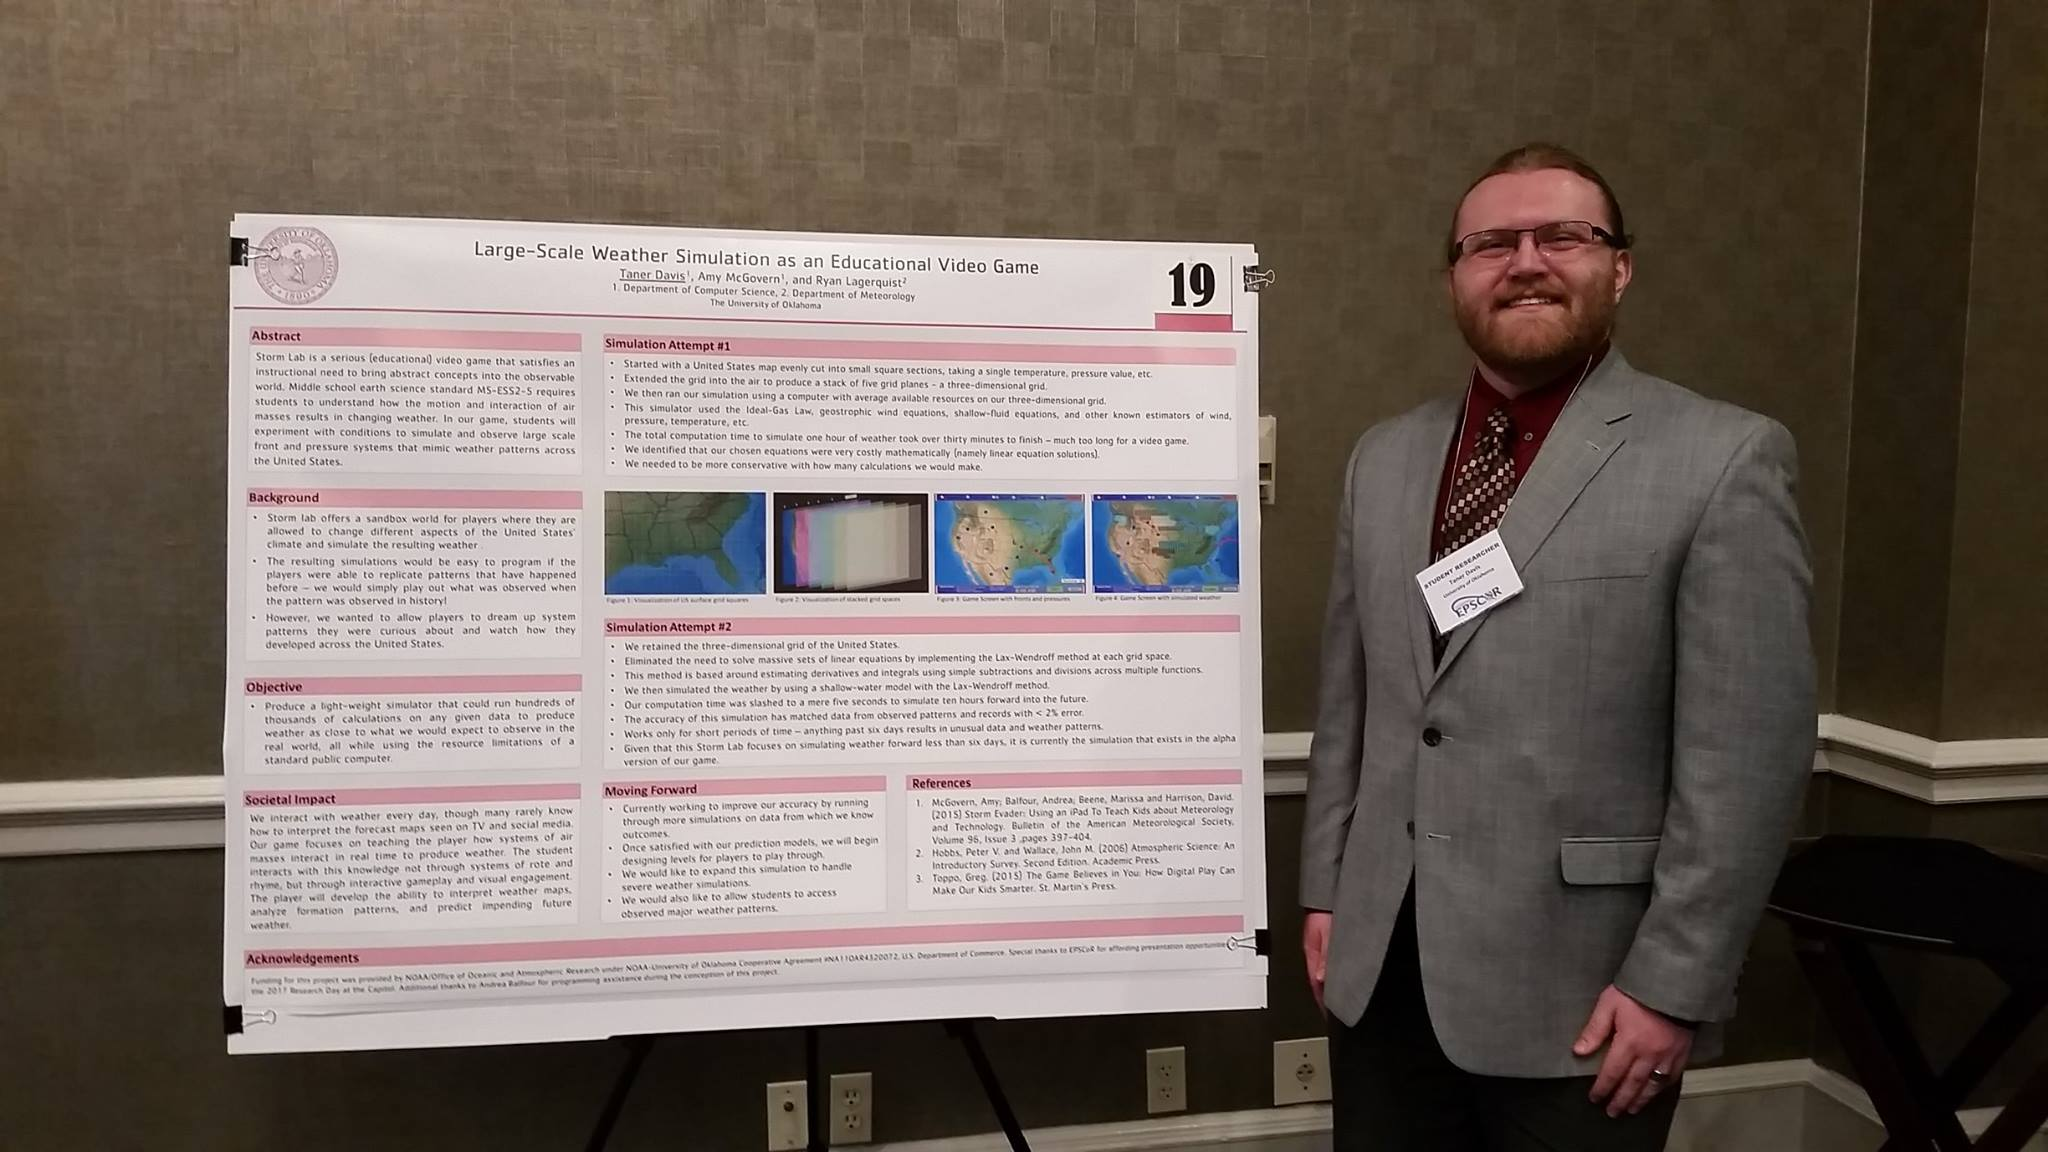 Engineering At OU On Twitter Congrats Taner Davis Way To - Video game designer working conditions